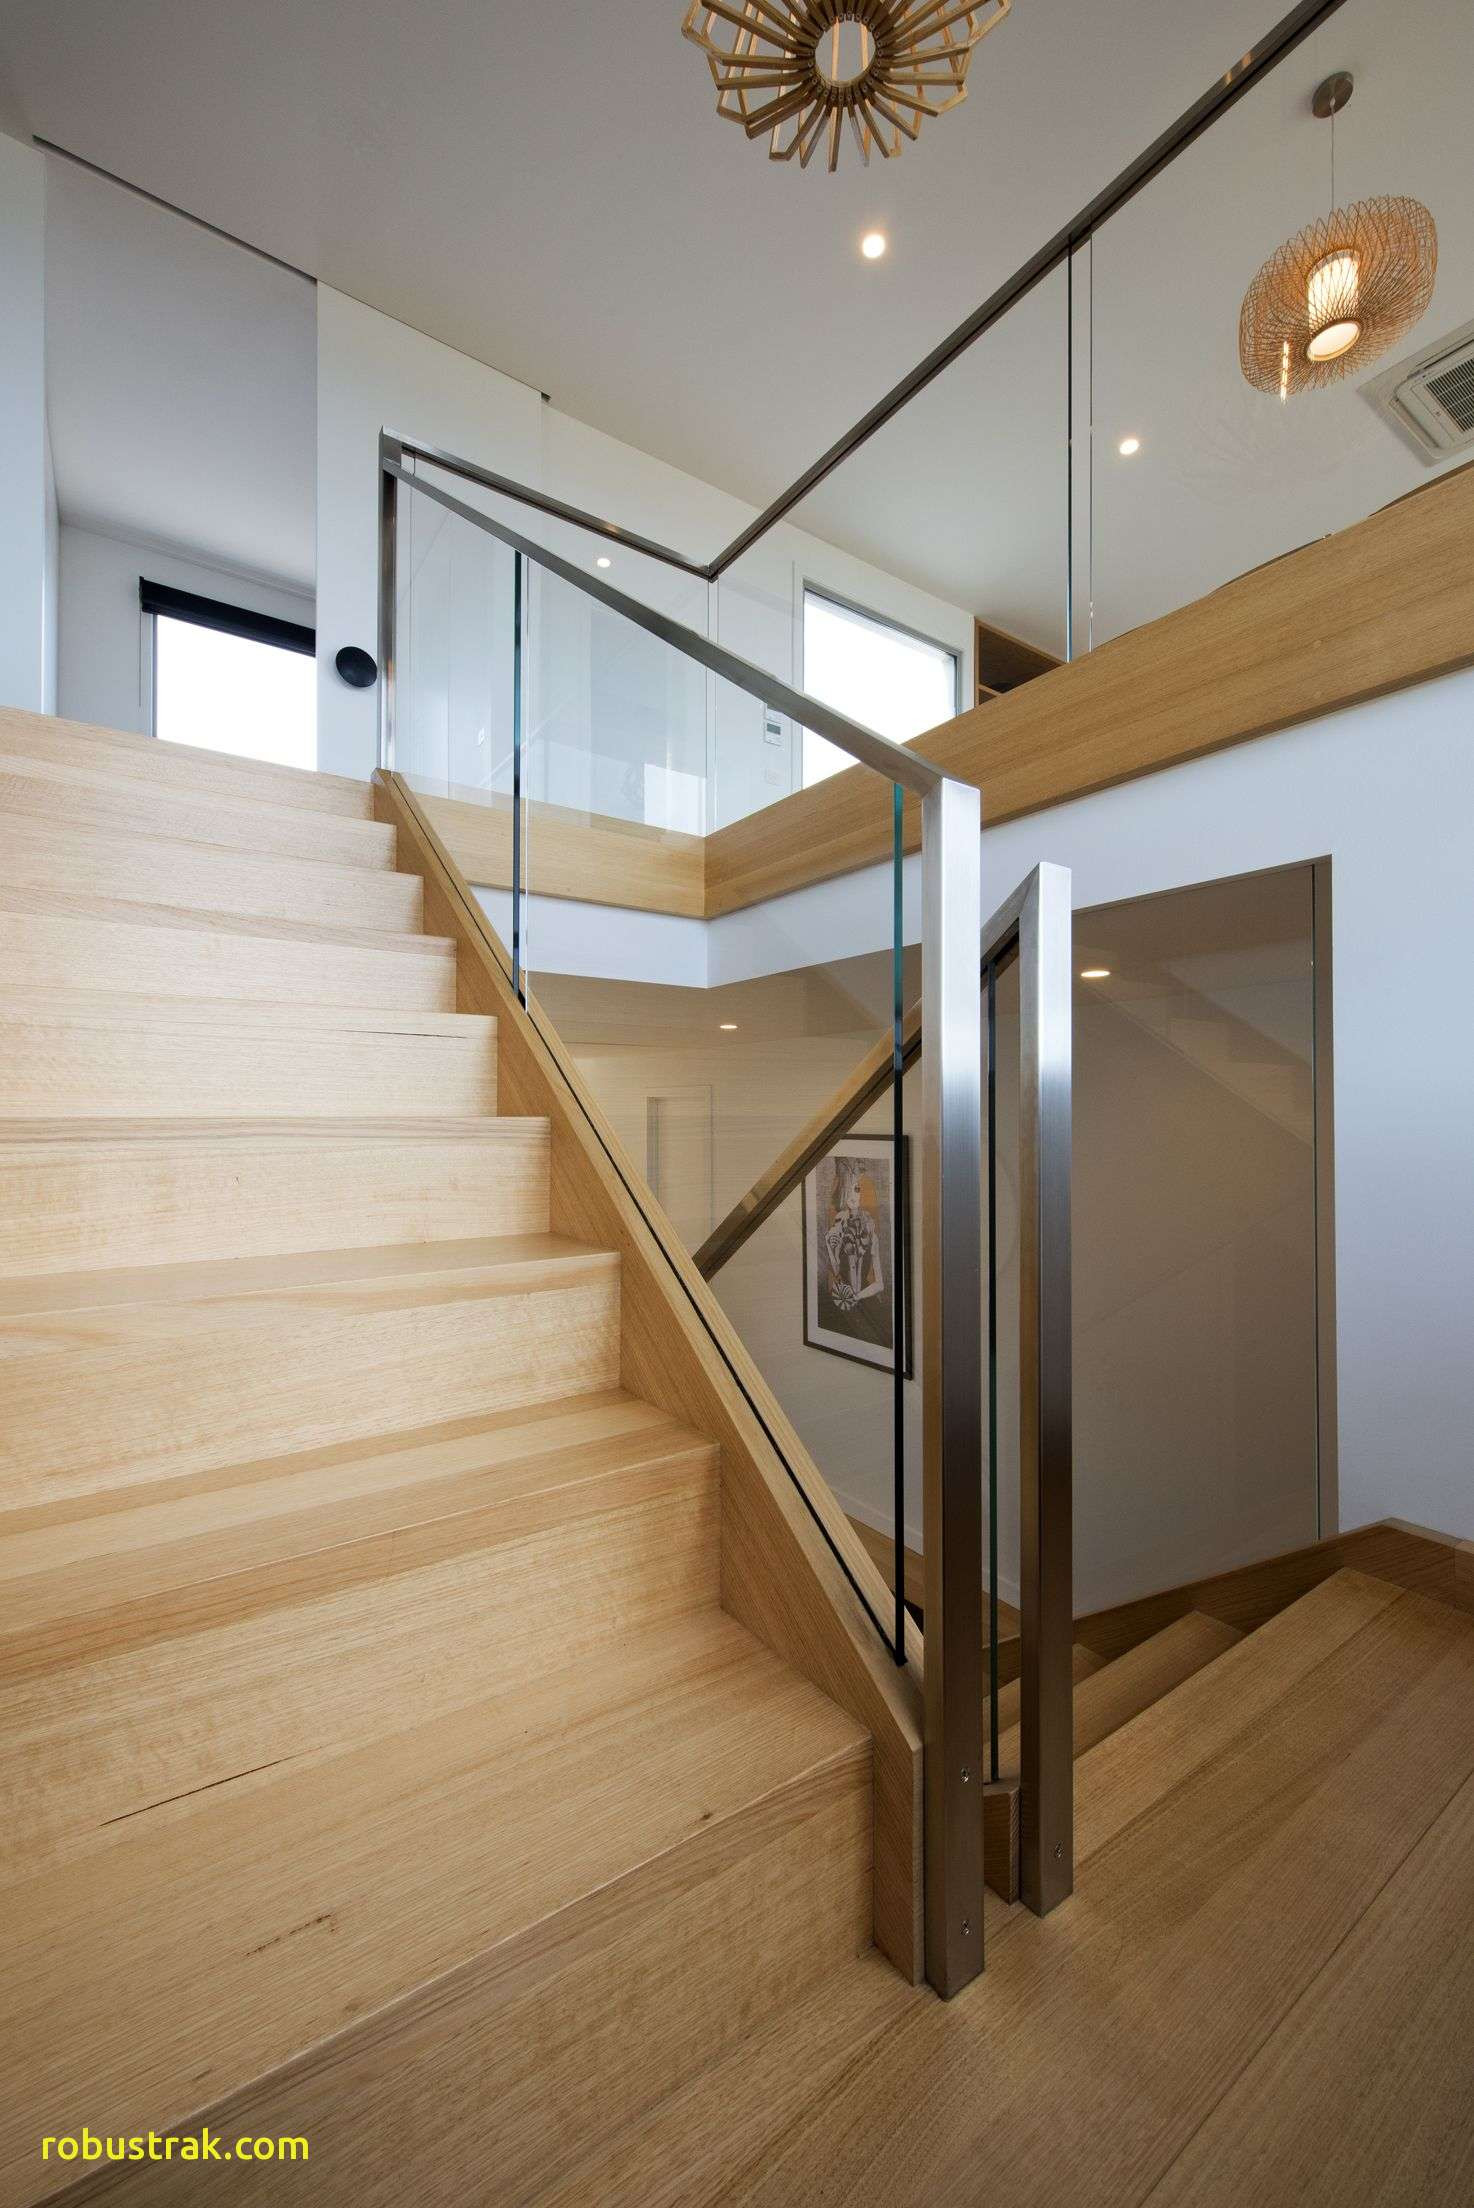 hardwood floor stairs of wood and glass staircase railing lovely stairs victorian ash stained intended for wood and glass staircase railing lovely stairs victorian ash stained glass balustrade